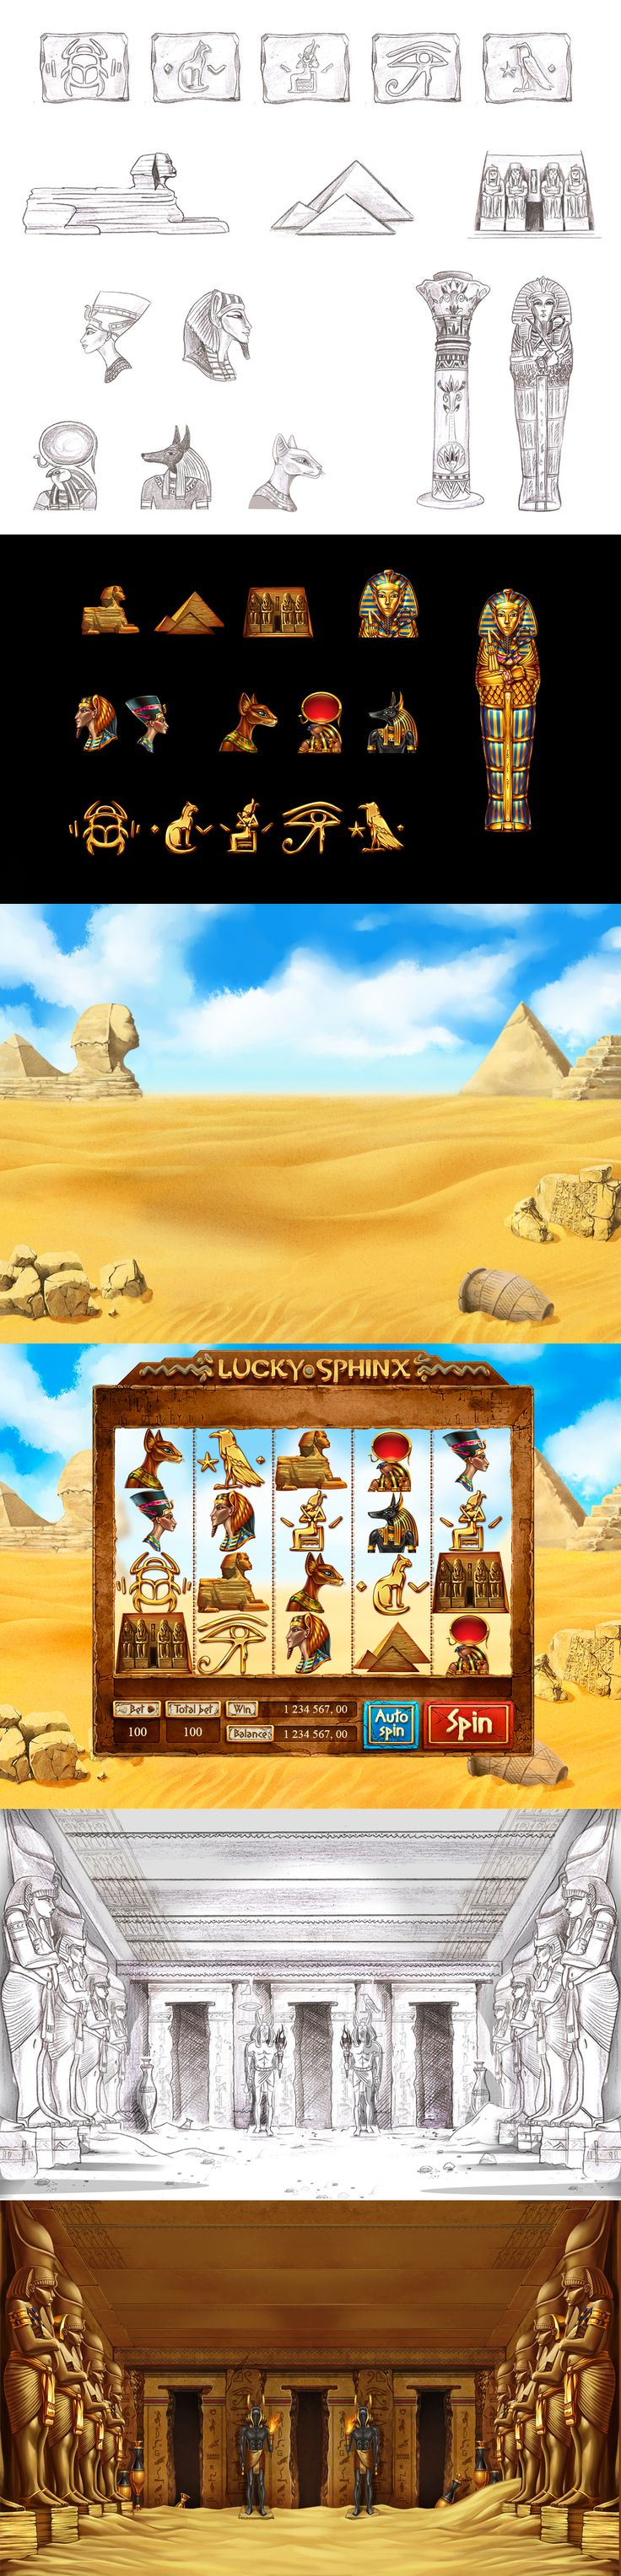 """Graphic design of symbols, icons and interface for the game slot-machine """"Lucky sphinx"""" This slot-machine was made in the ancient Egyptian theme and was inhabited by ancient gods and pharaohs. Enjoy! http://slotopaint.com/"""